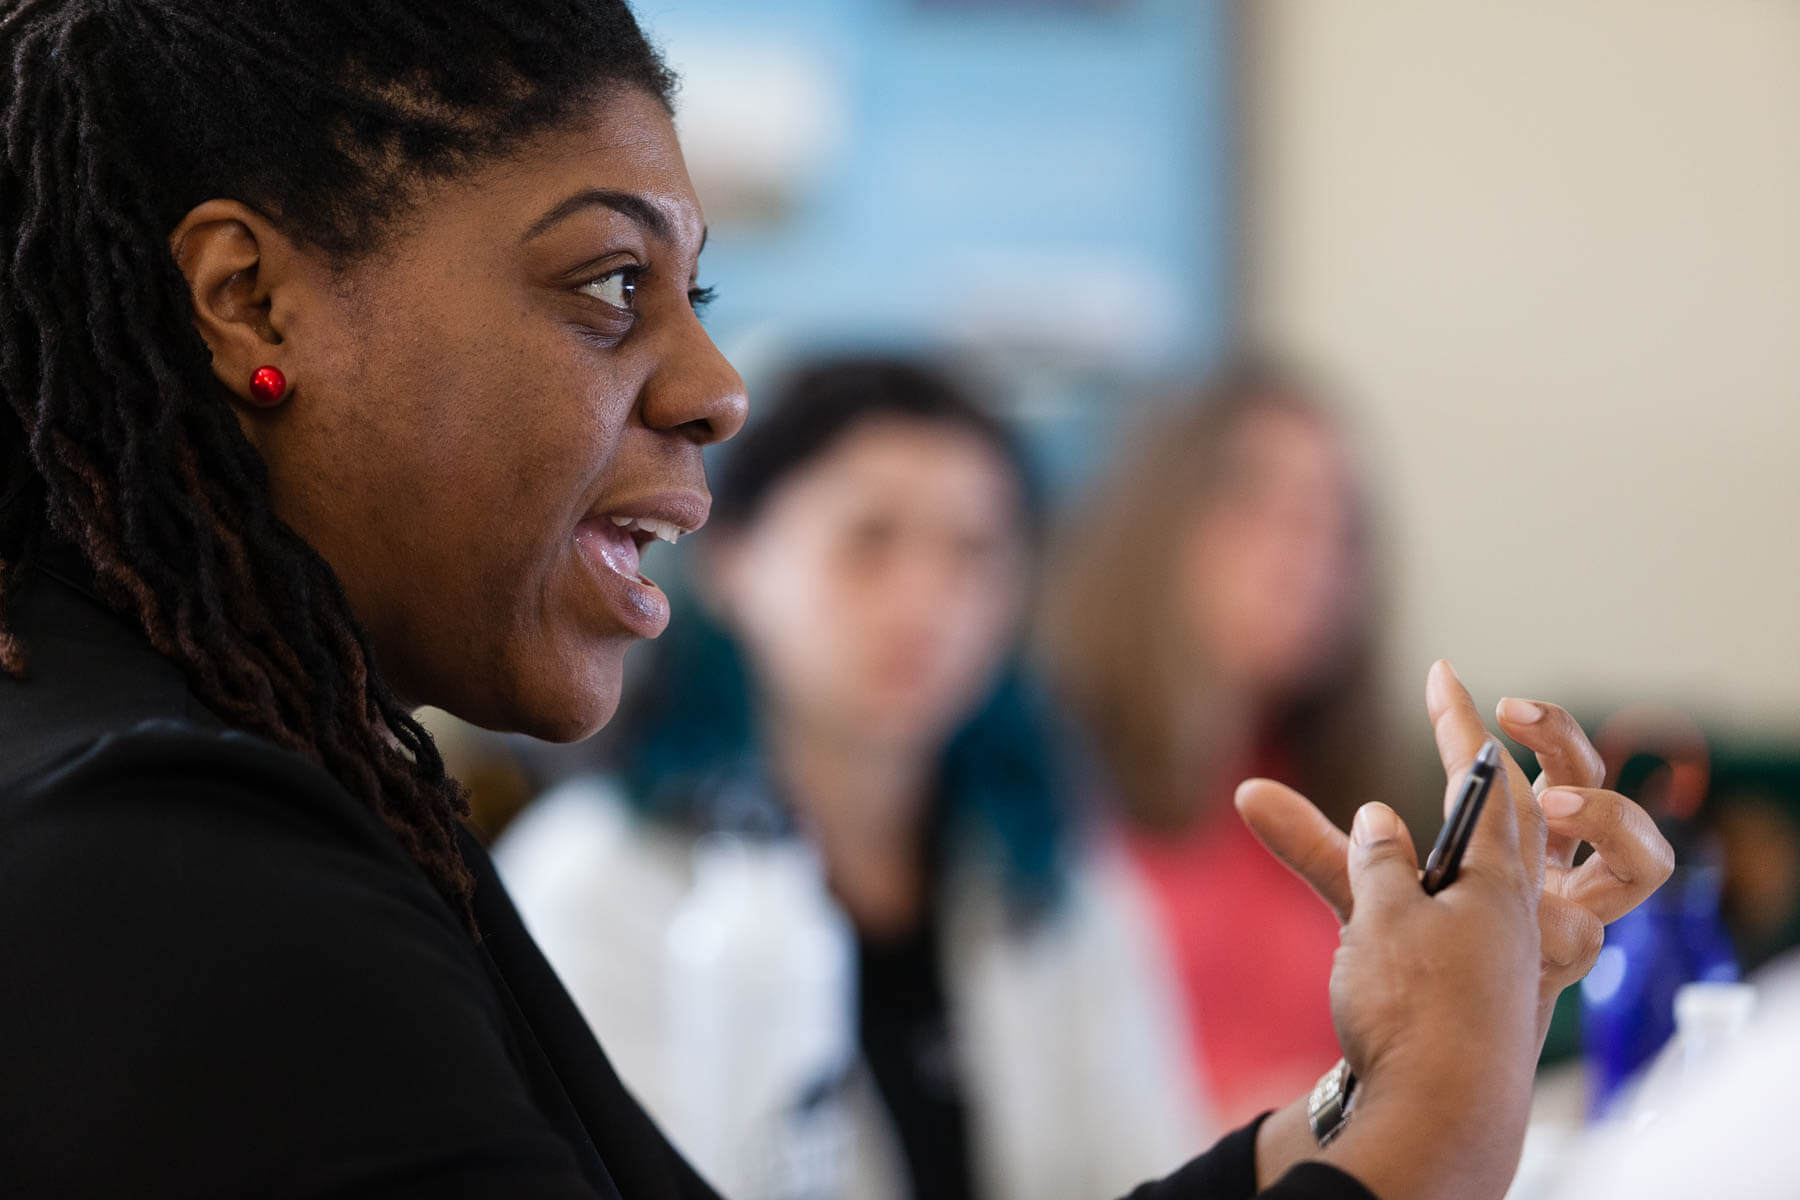 Sarah Lillie Anderson attends the Chesapeake Bay Program's Diversity Workgroup Meeting at Masonville Cove Environmental Education Center in Baltimore, Md., on Nov. 2, 2016. (Photo by Will Parson/Chesapeake Bay Program)